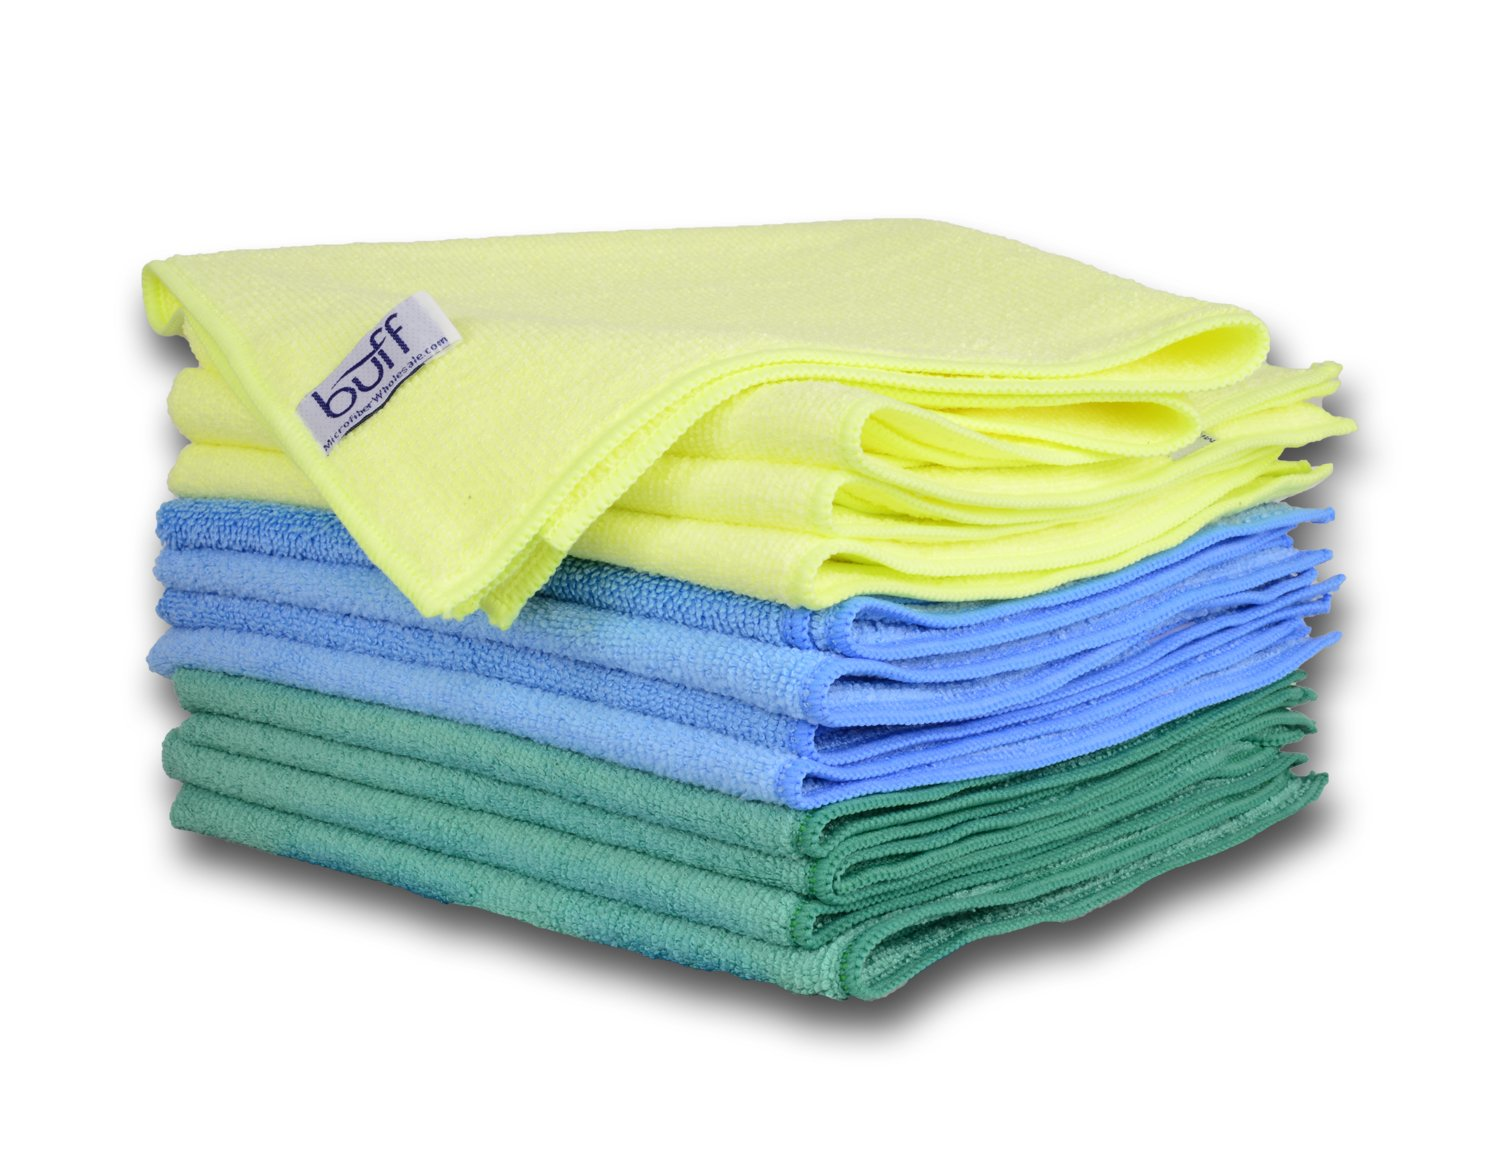 Multi-Color Microfiber Towels 12 Pack by Buff Pro | Professional House-Hold Cleaning Cloths For High Quality Results | large size 16'' x 16'' Blue, Yellow, Green